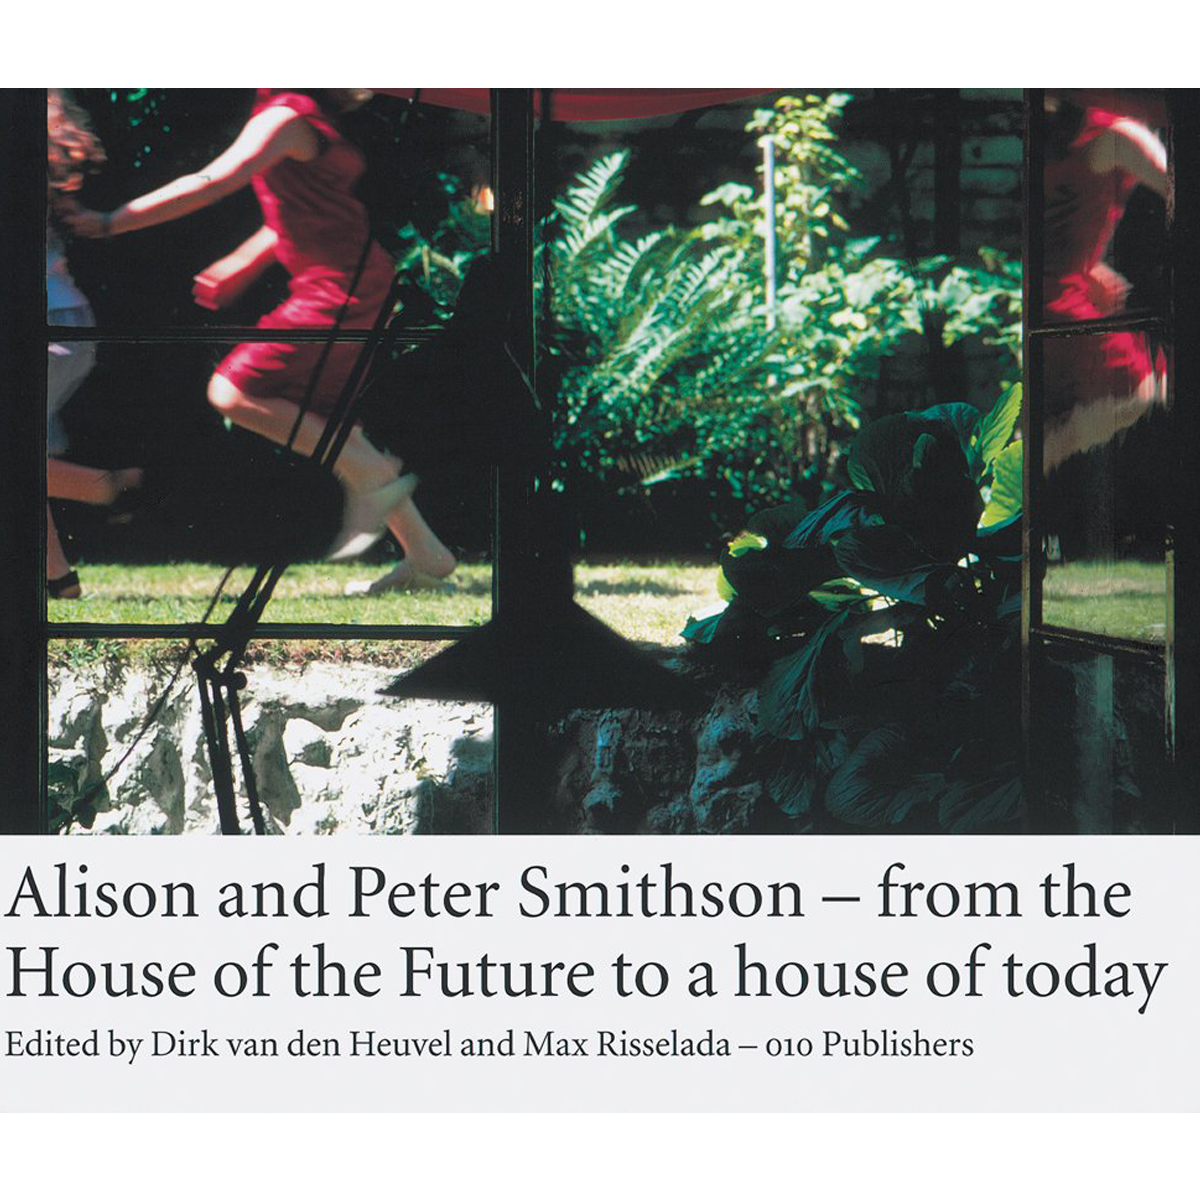 Alison and Peter Smithson: From the House of the Future to a house of today